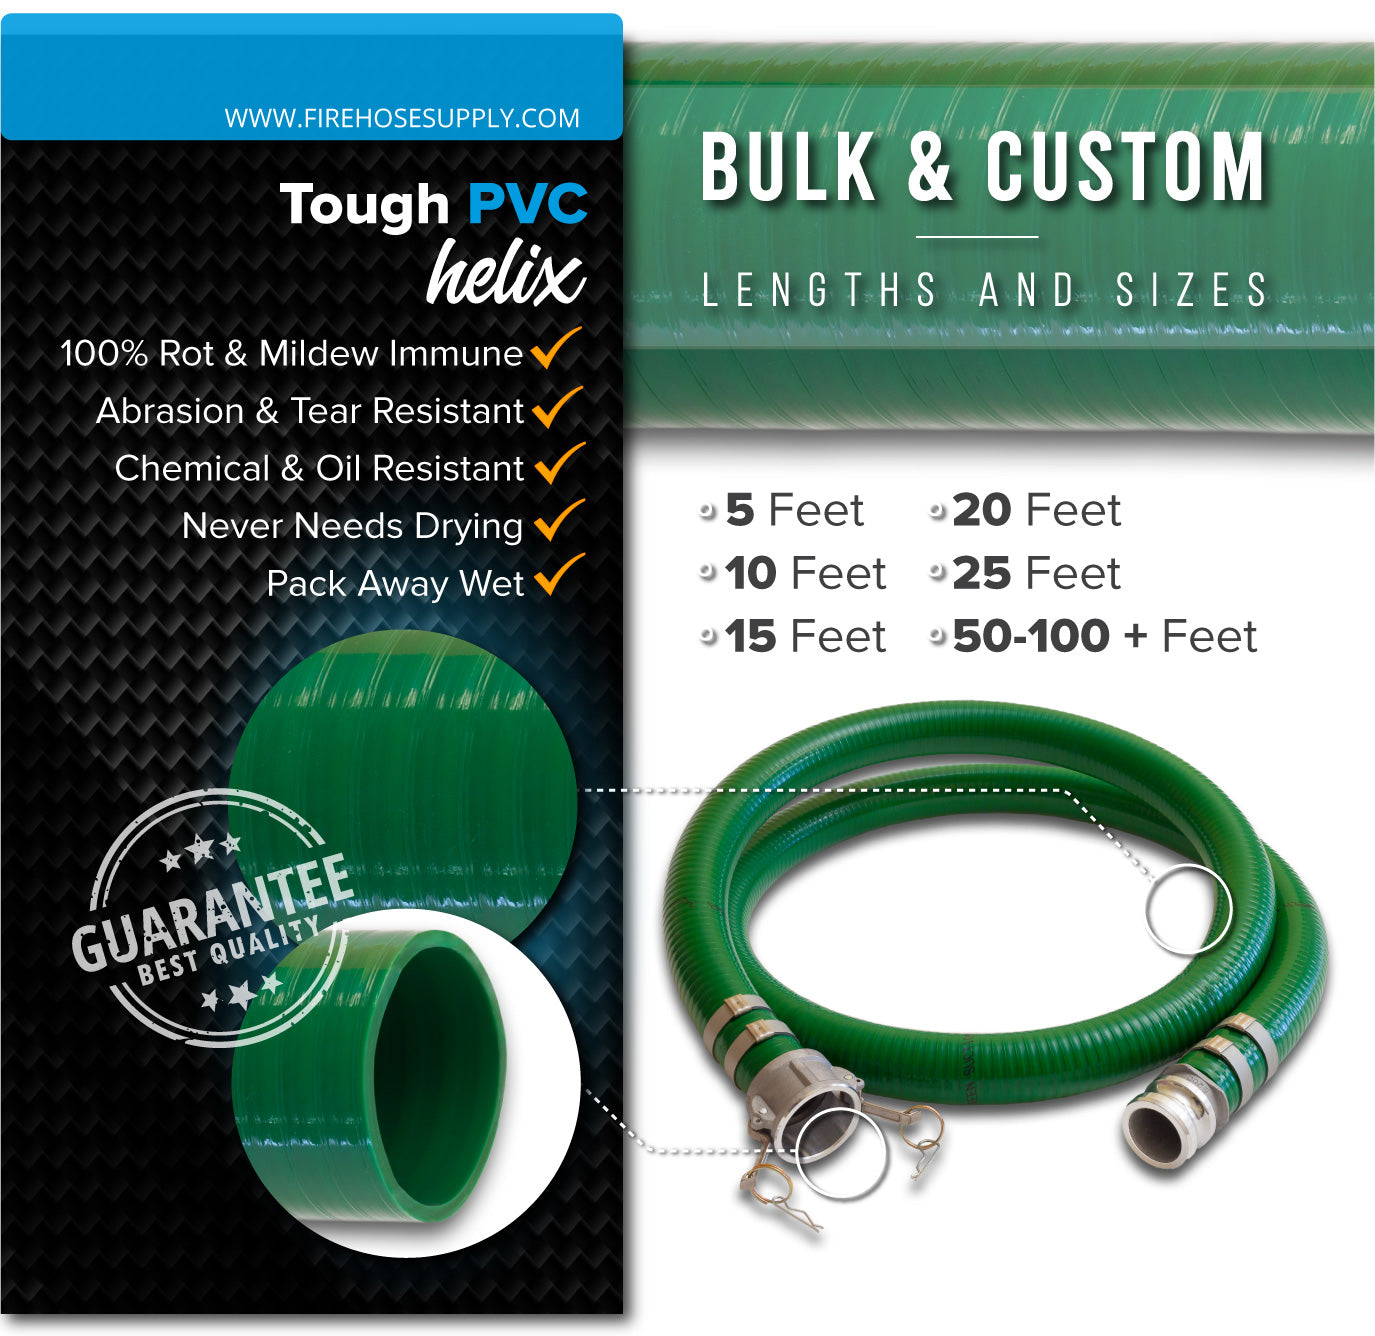 4 Inch Camlock Female x Male Green Suction Hose PVC Materials